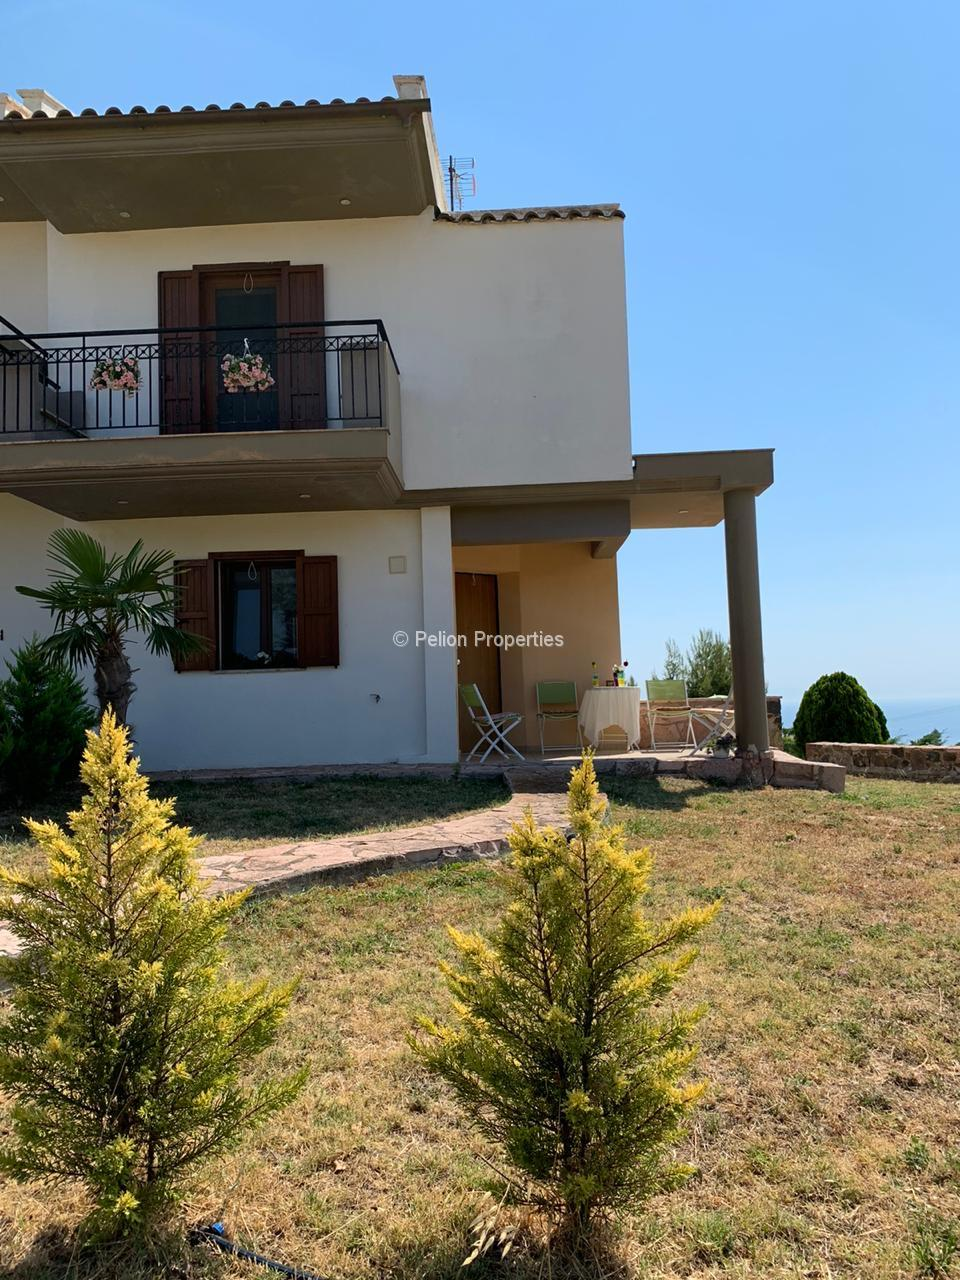 Affordable Tranquility - Property Pelion